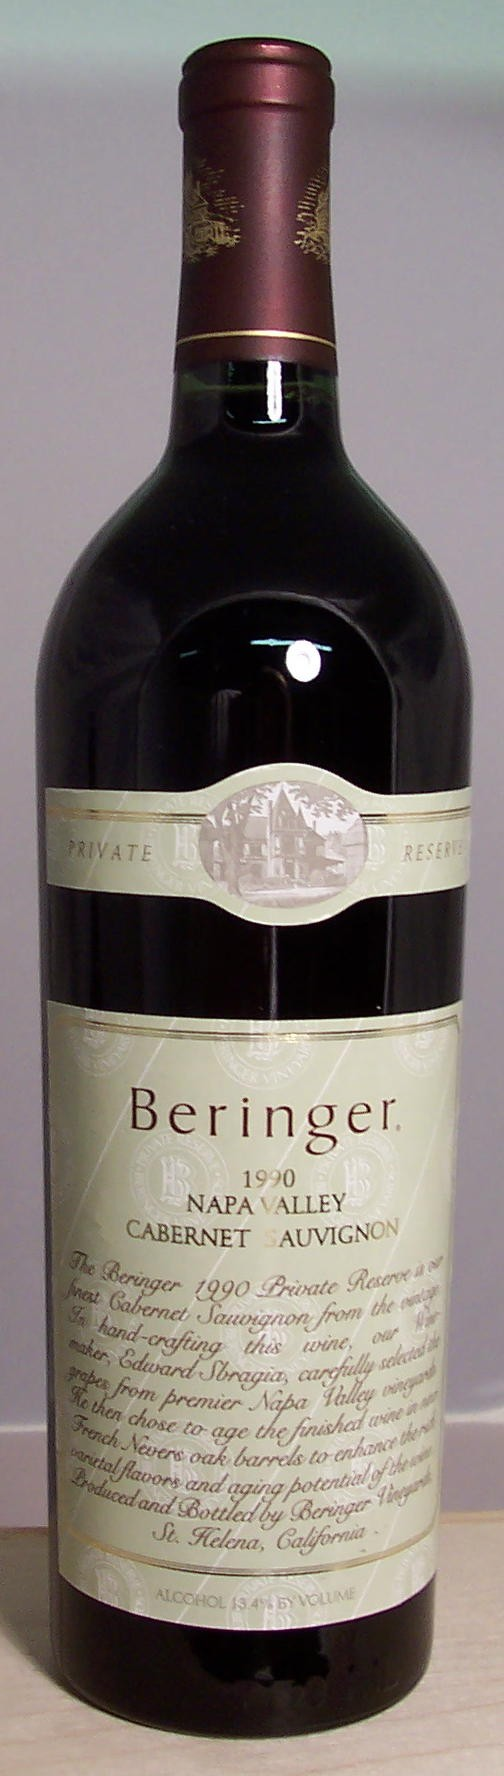 Beringer Vineyards Cabernet Sauvignon Private Reserve Napa Valley 1990